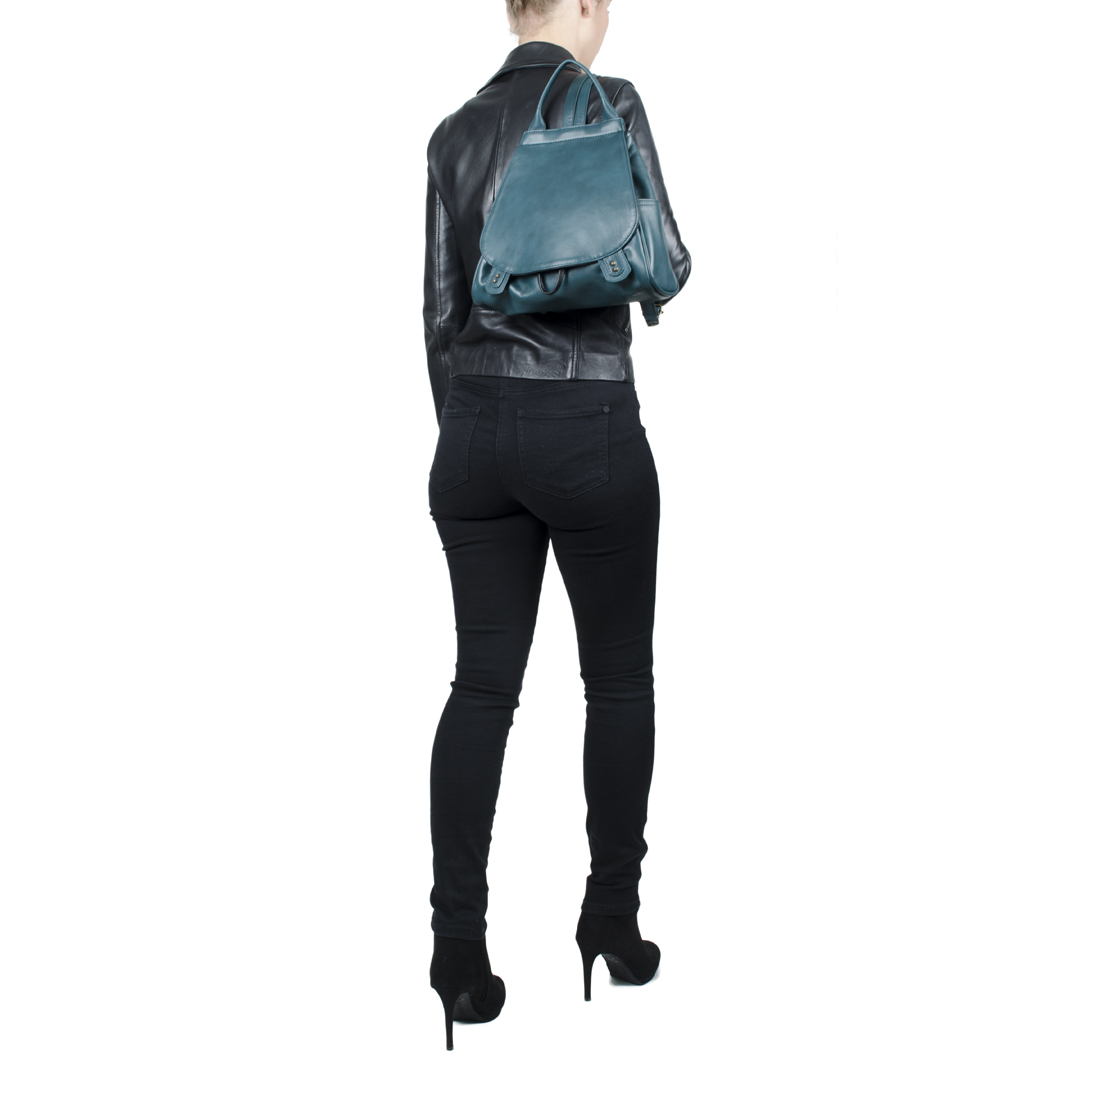 Daliya Loden Leather Backpack